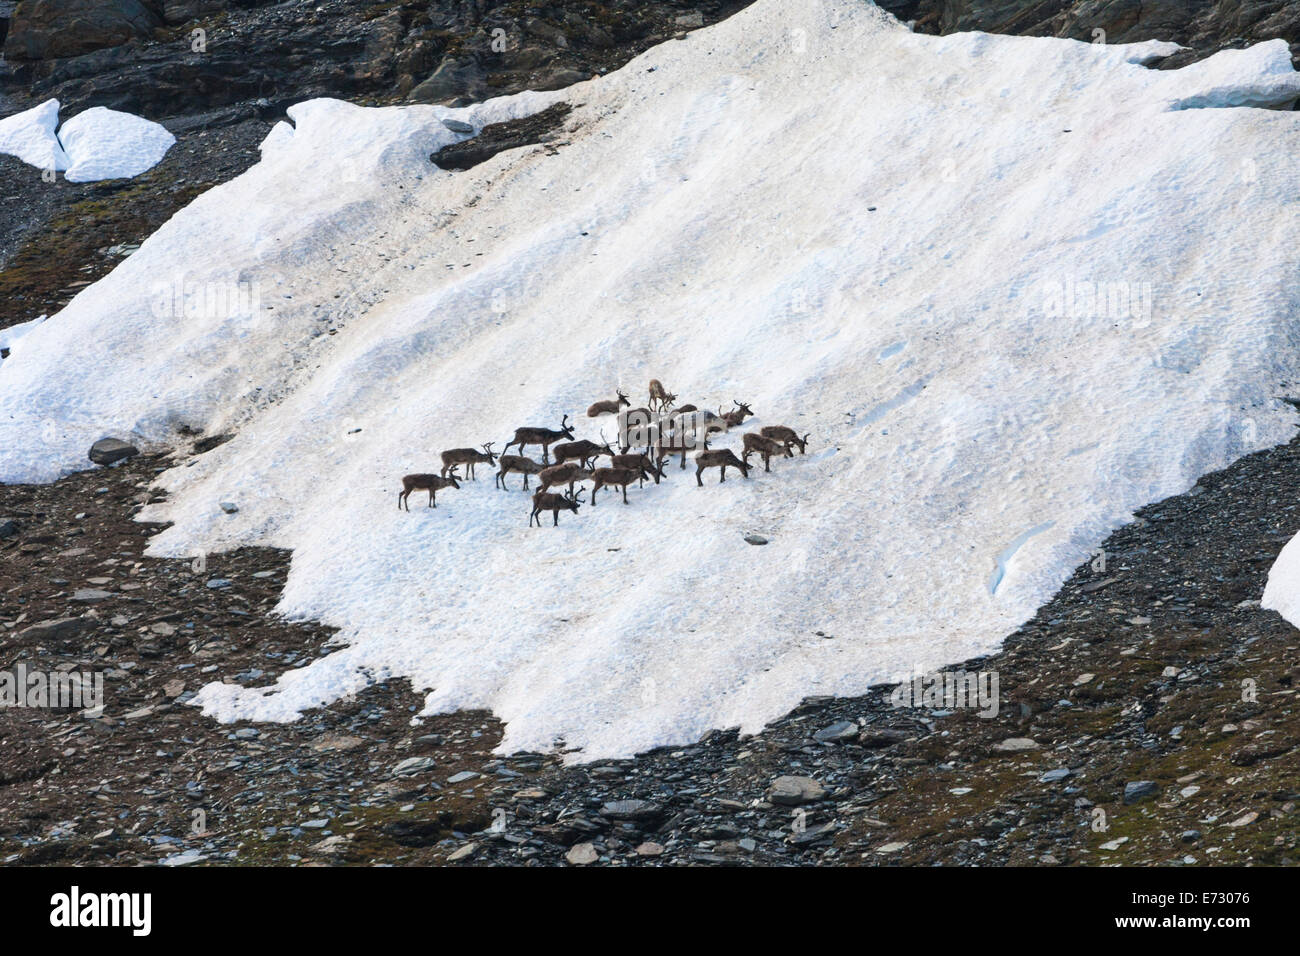 Reindeers gathering on a spot of snow in summer time along kungsleden in mountain area of swedish lapland - Stock Image